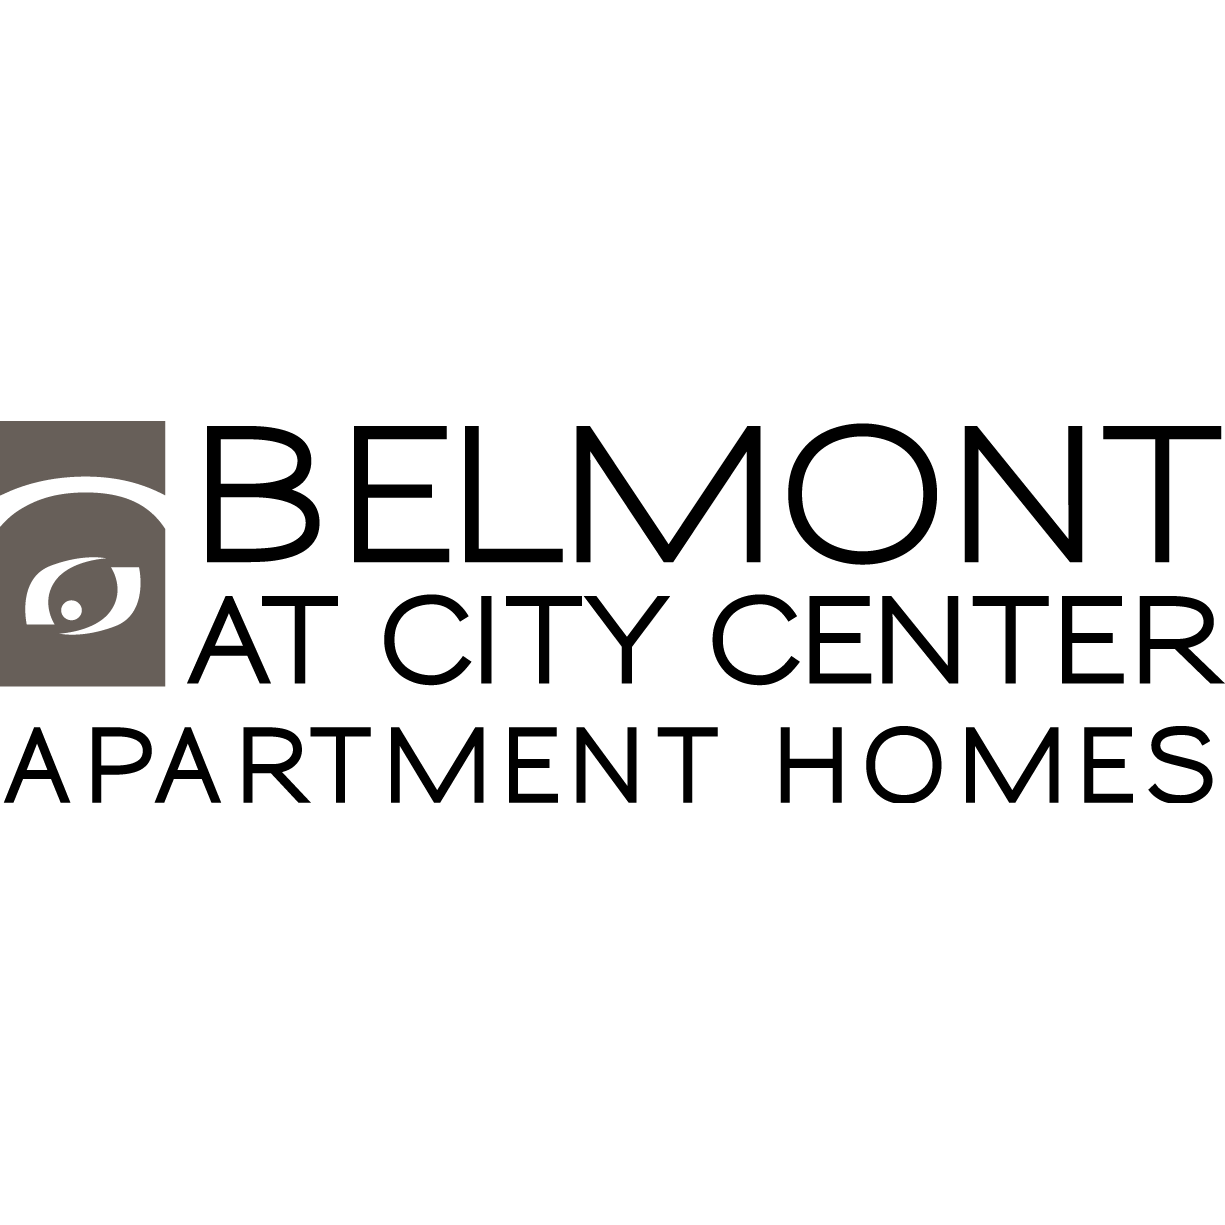 Belmont at City Center Apartments